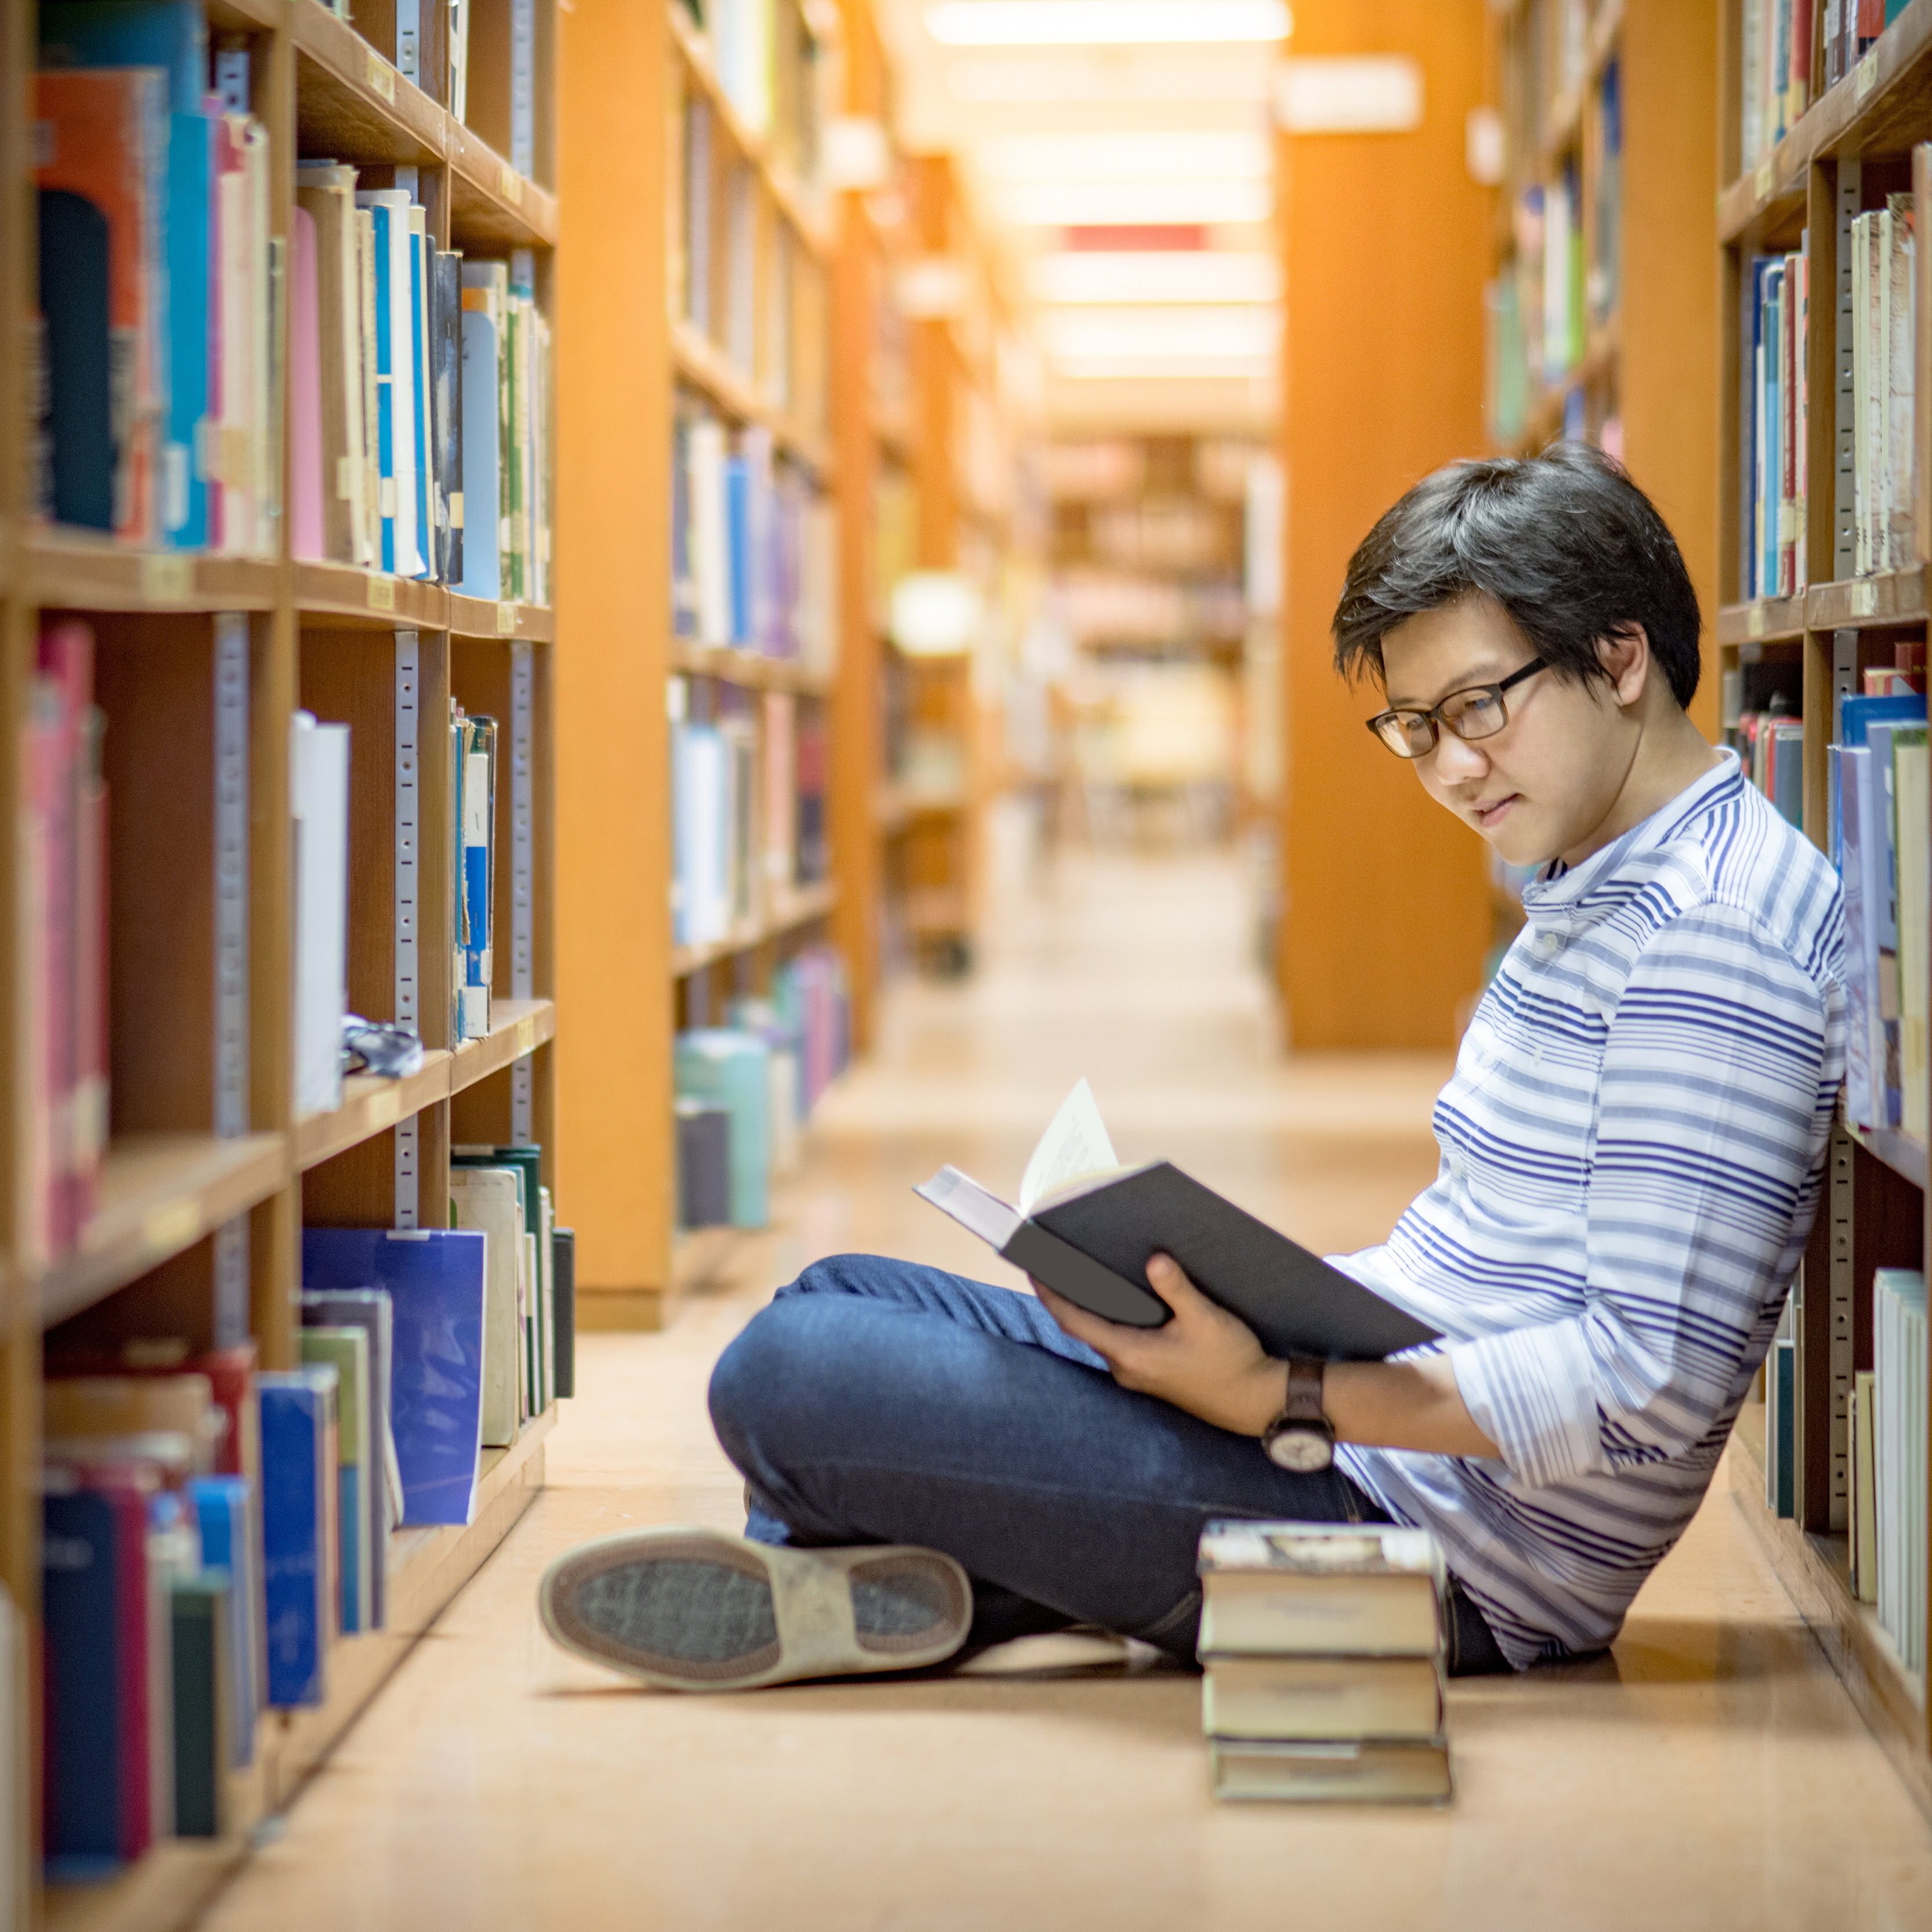 Young man reading in library stacks